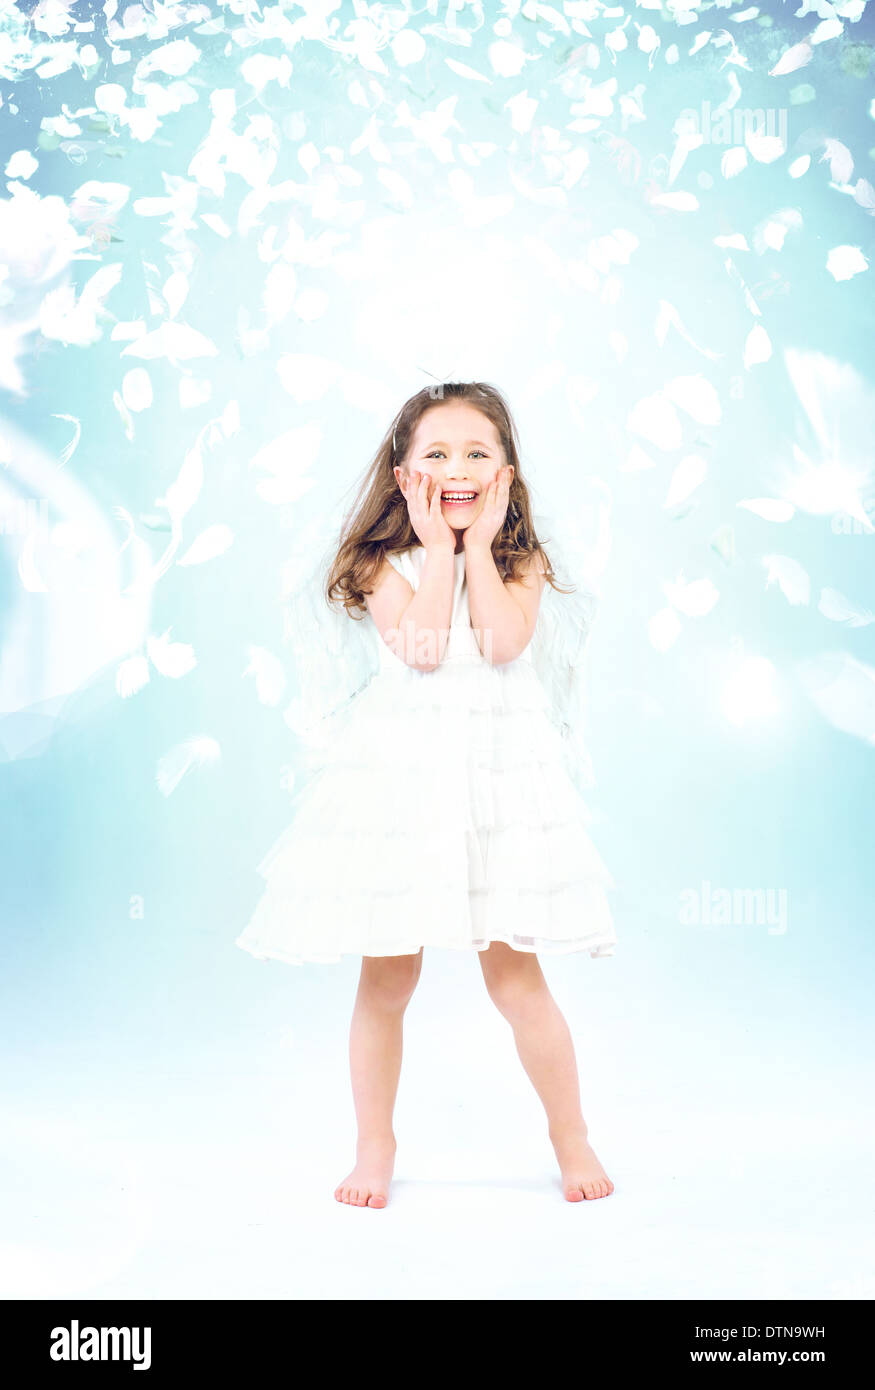 Cute little girl among flying rose petals - Stock Image